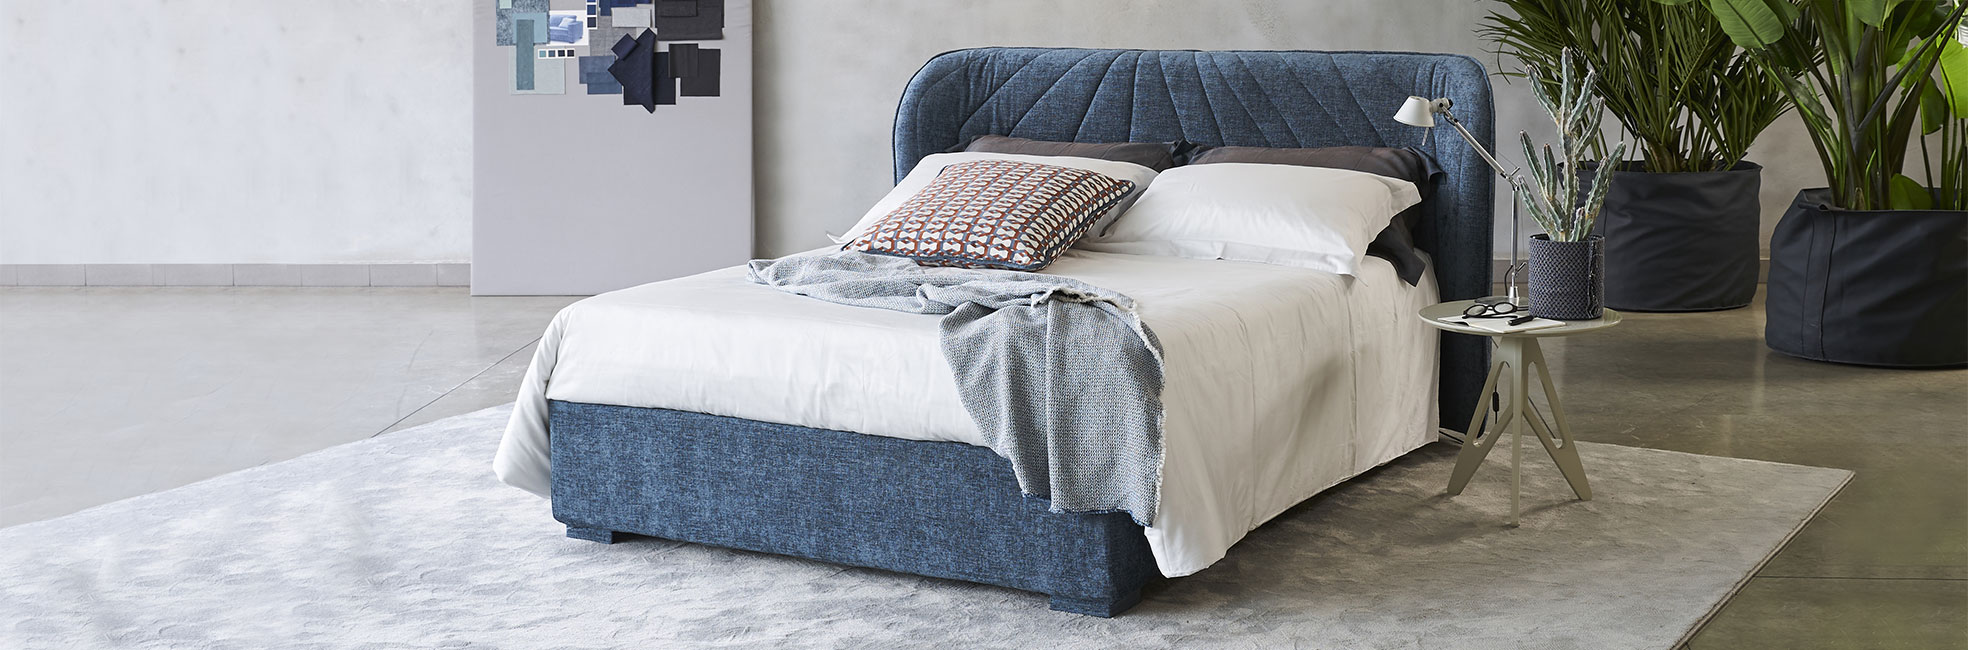 Modern winged bed with tufted headboard